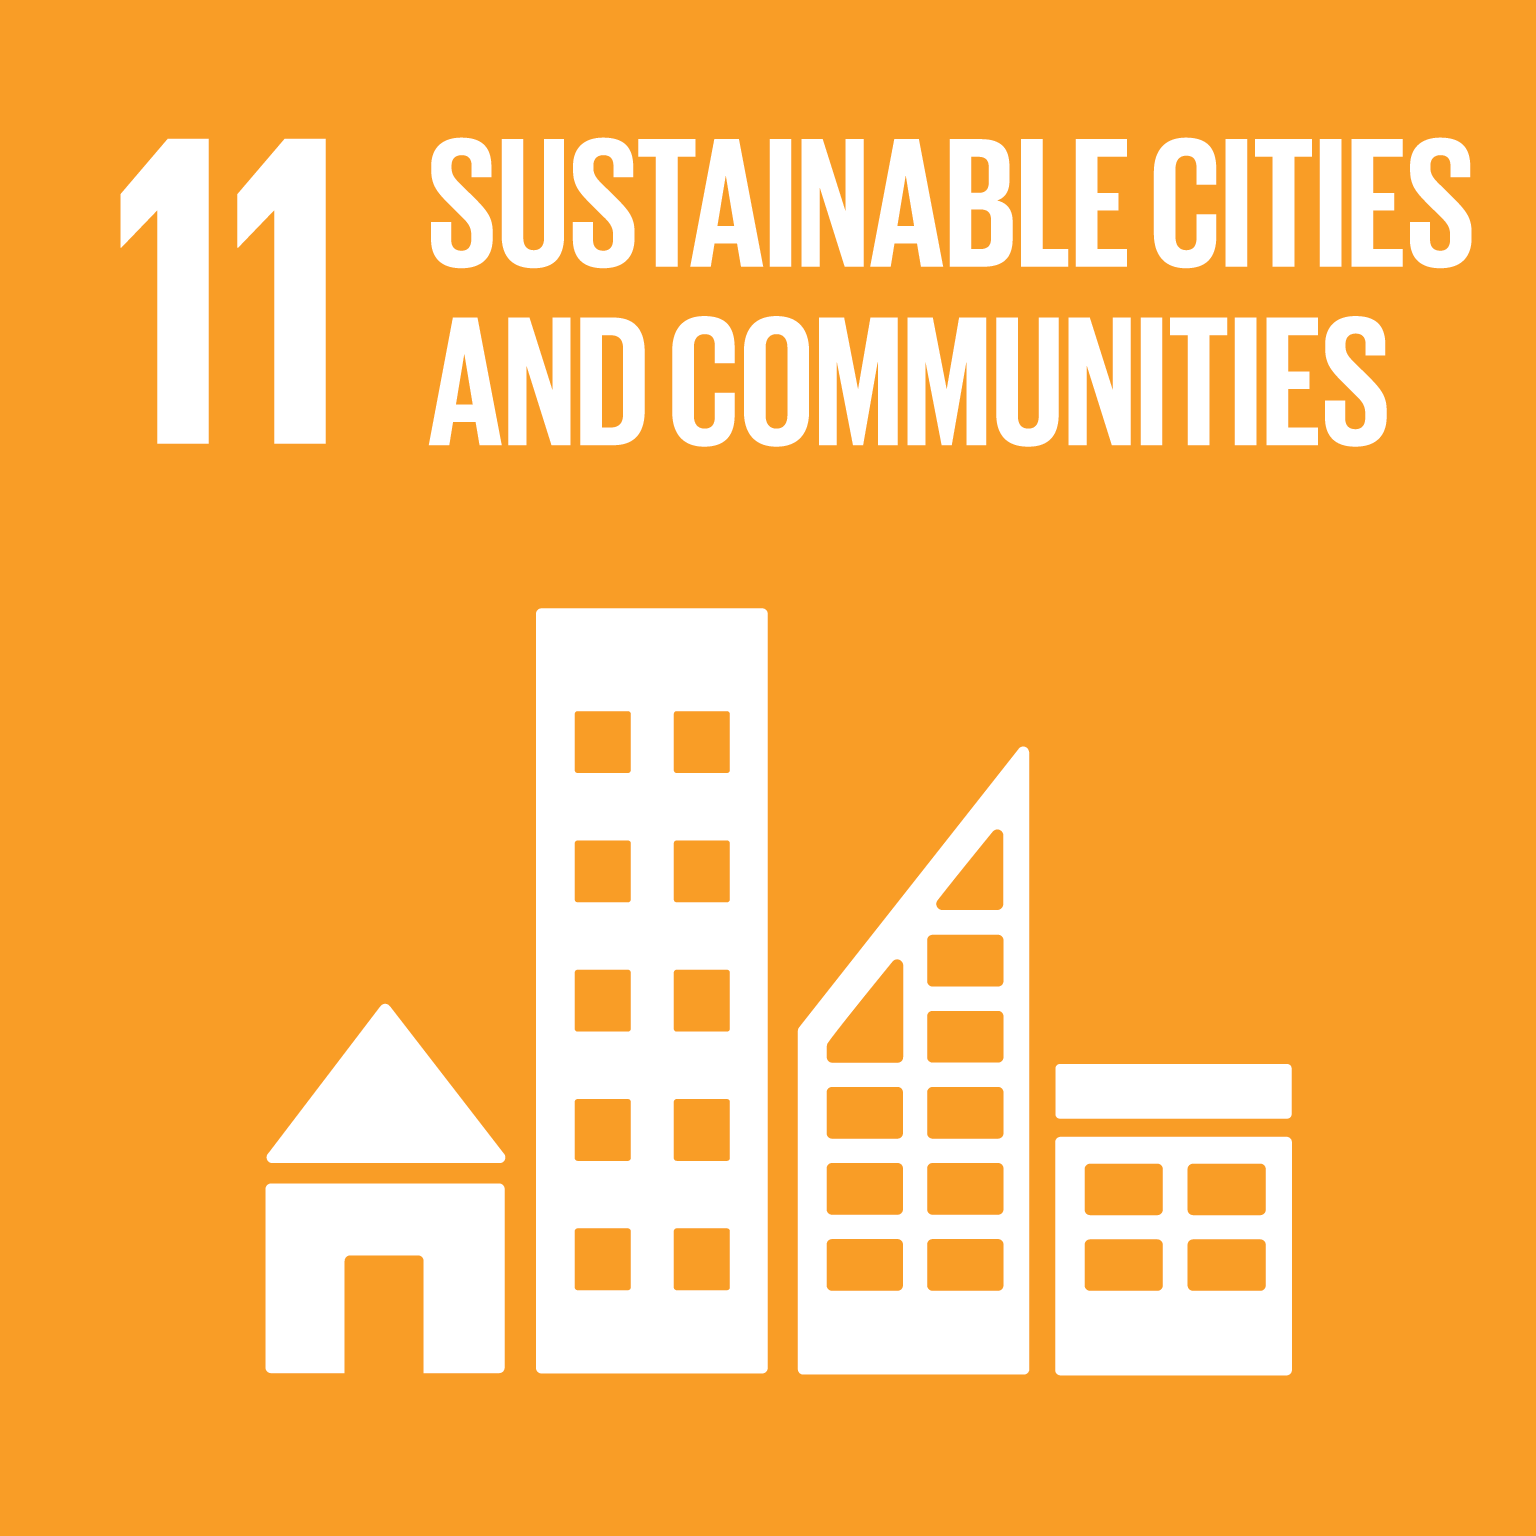 Sustainable cities and communities - Sustainable Development Goals